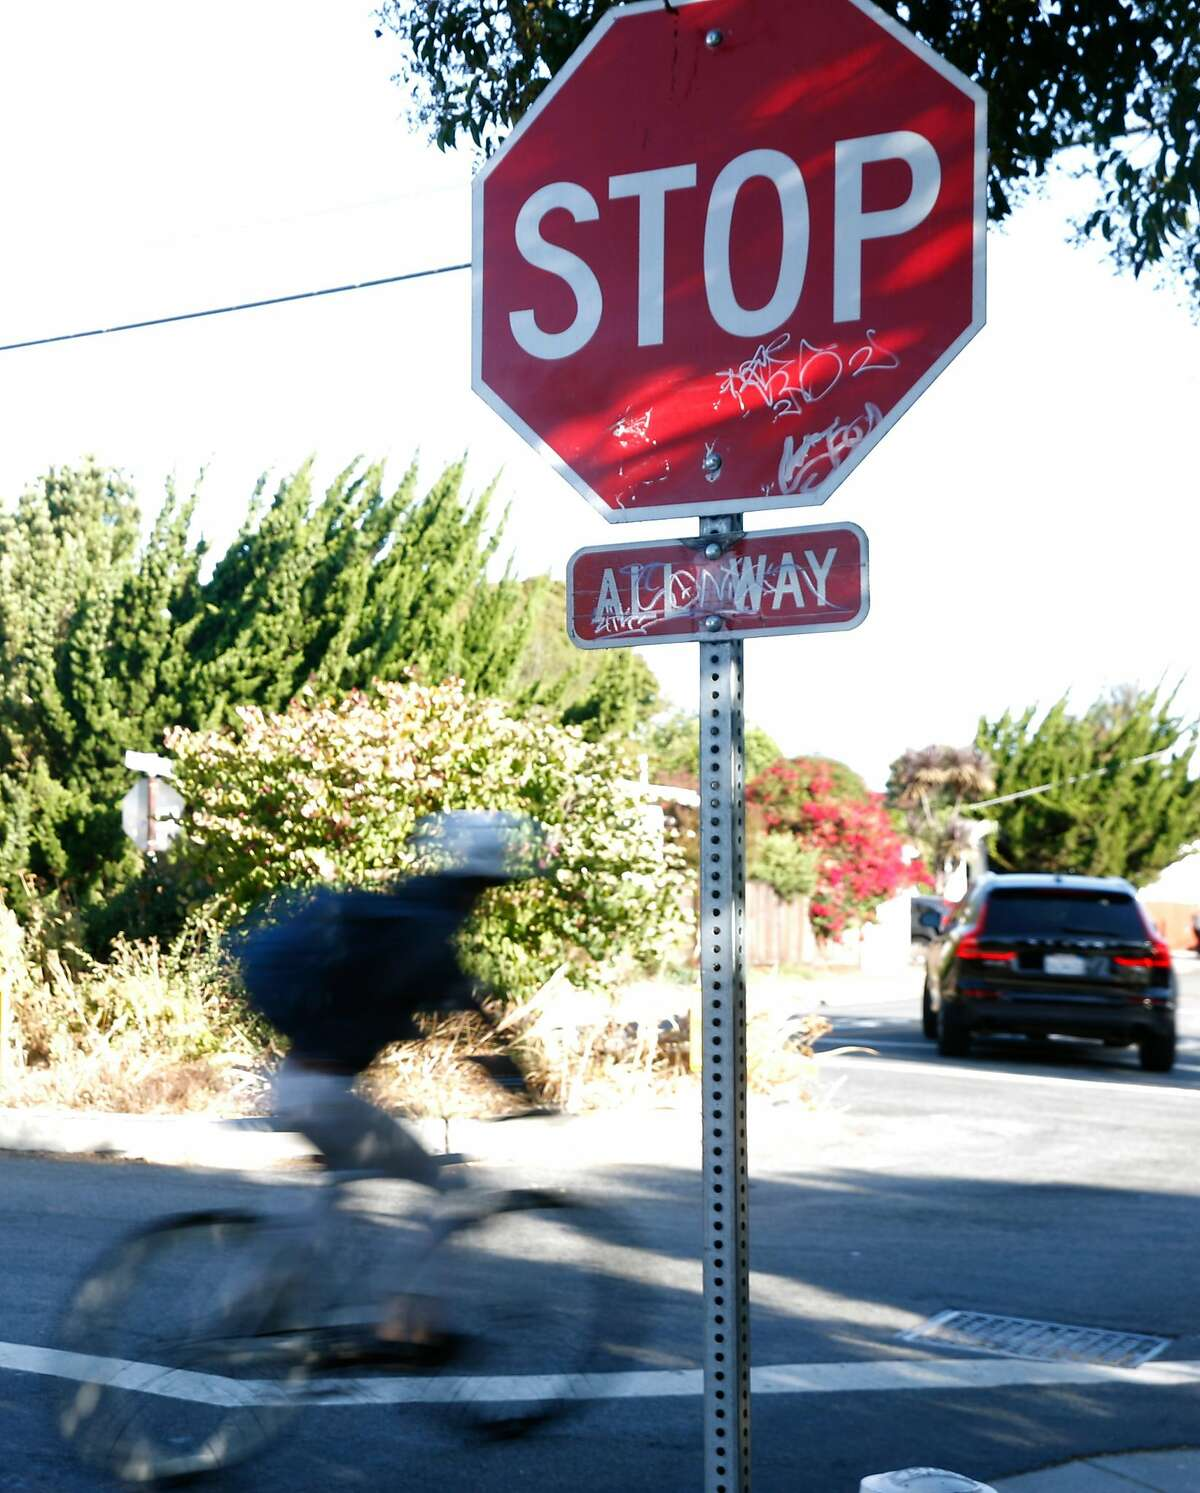 A blcyclist rolls through a stop sign at Bancroft Way and California Street in Berkeley, Calif. on Wednesday, Sept. 11, 2019. Berkeley Police are issuing $300 citations to bicyclists who blow through stop signs or red lights.